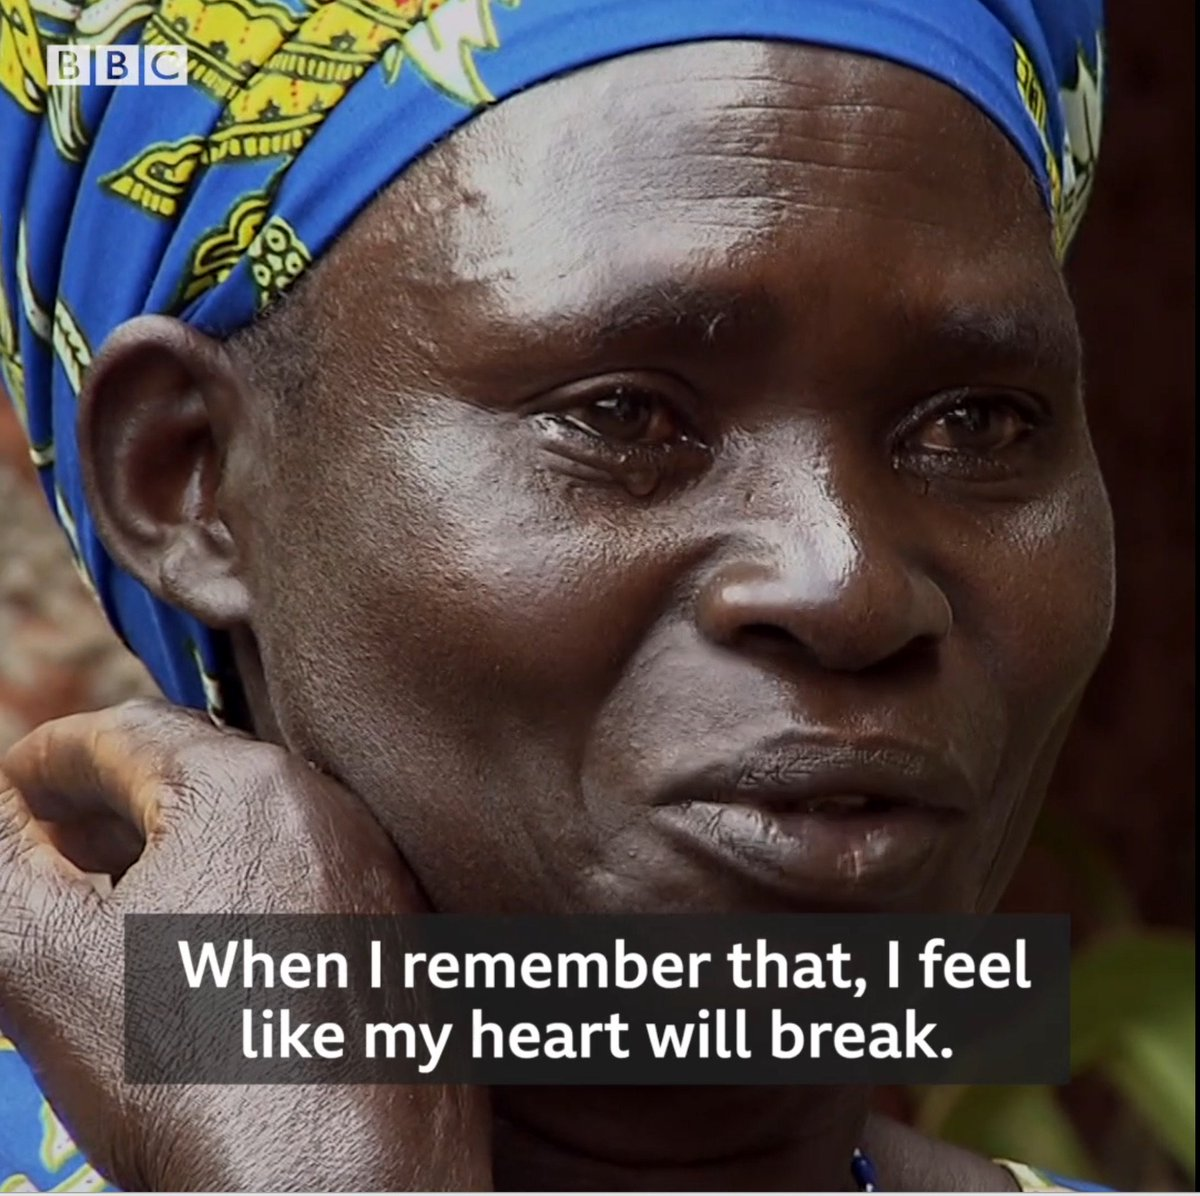 Anne-Marie met face to face with the man who killed two of her children during the Rwandan genocide 25 years ago - and she forgave him.  This is her story.